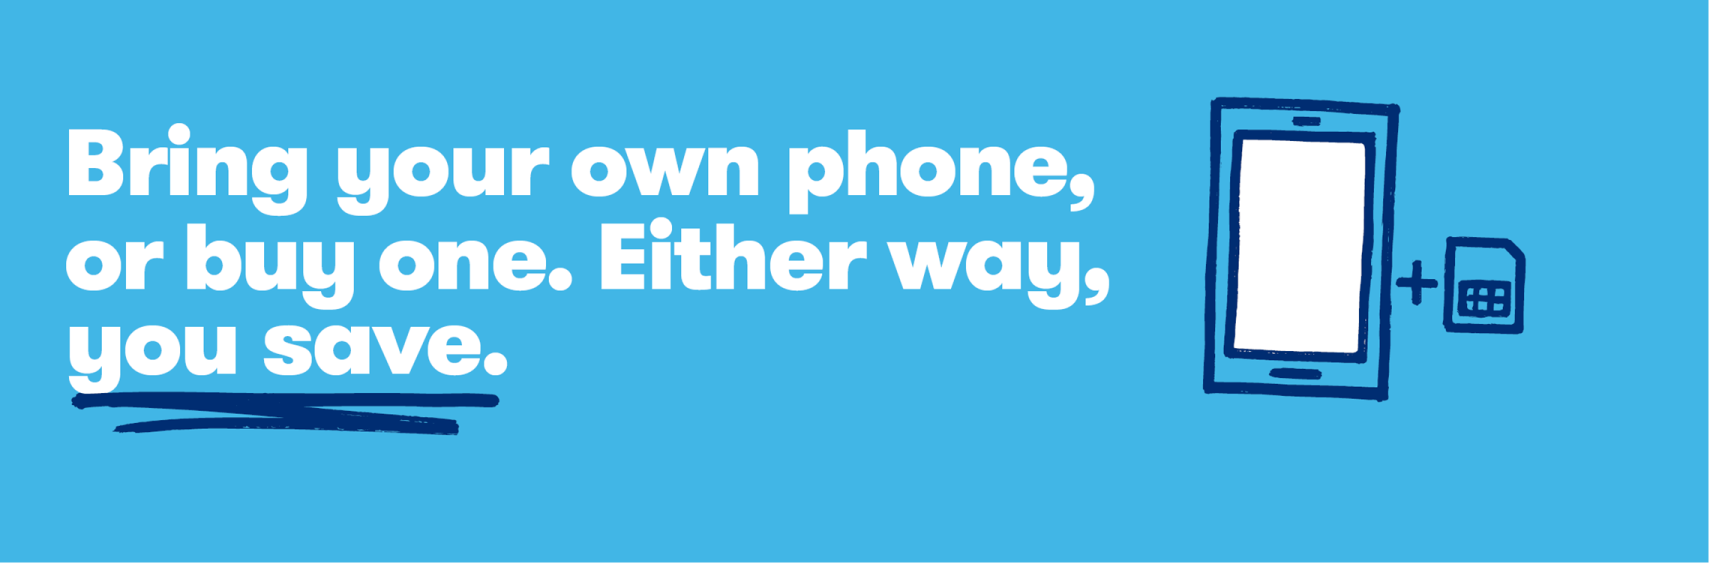 Bring your own phone, or buy one. Either way, you save.